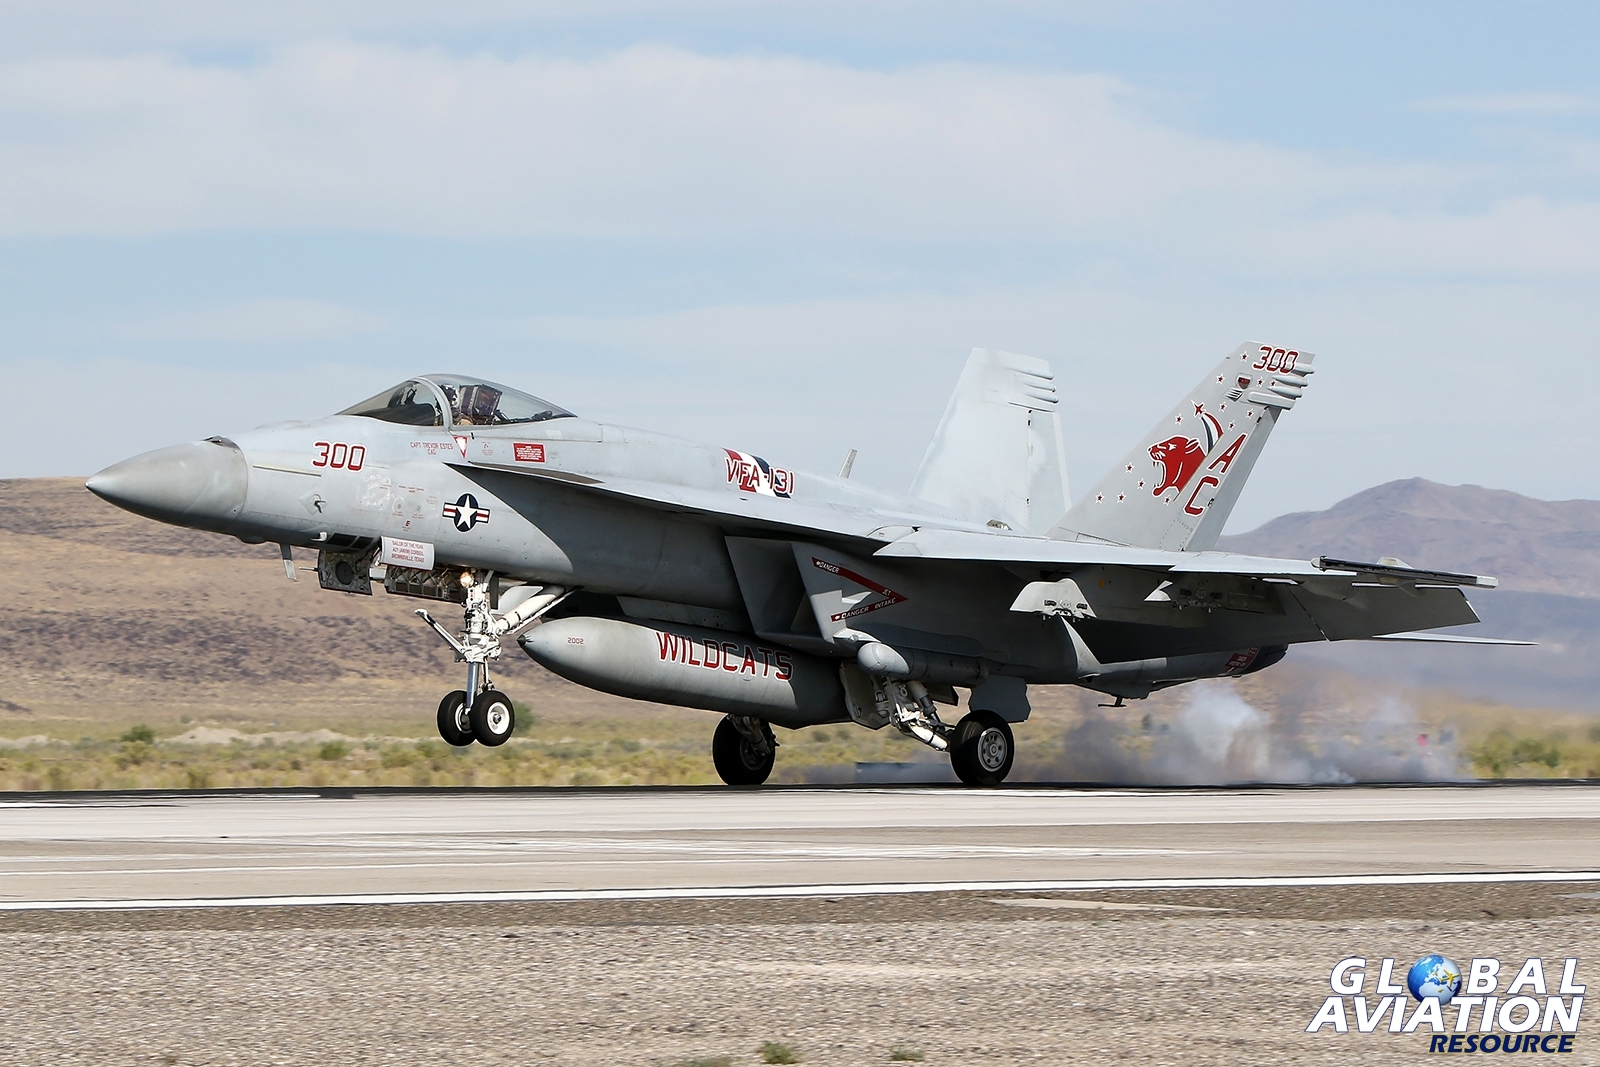 VFA-131 Wildcats F/A-18E © Paul Dunn - Global Aviation Resource